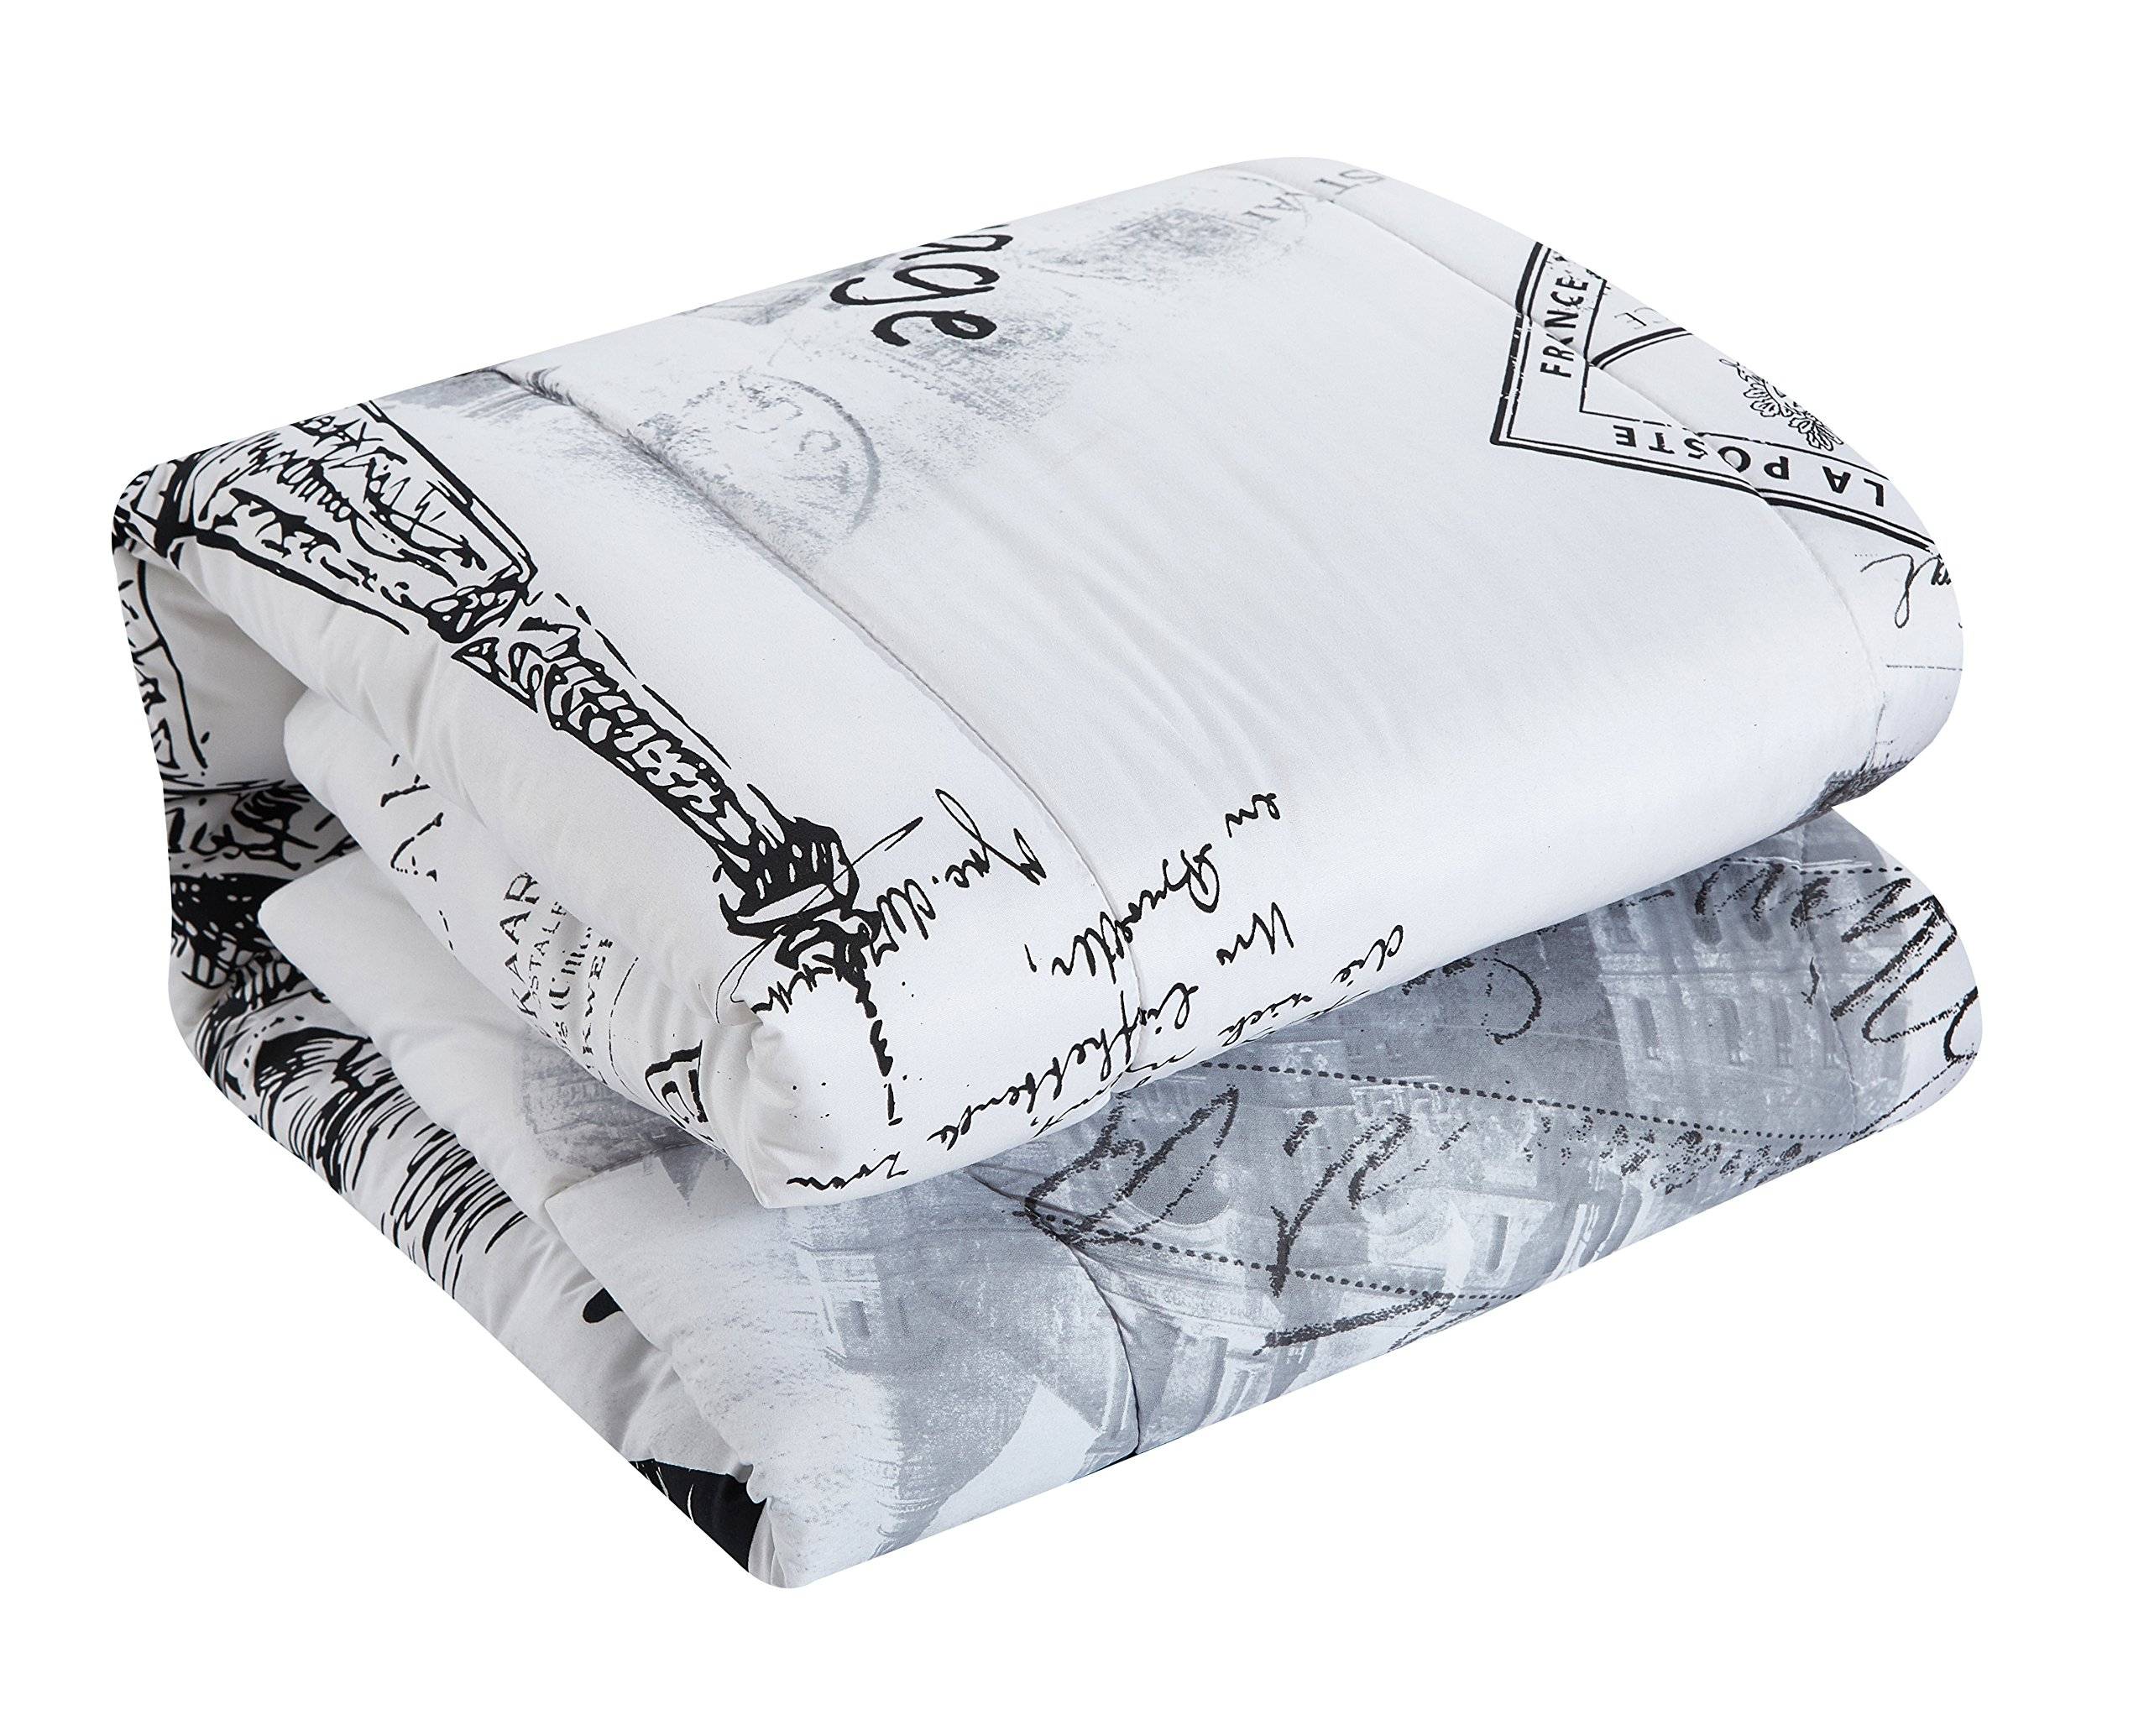 CASA Paris Comforter Set, Full/Queen, 5 Piece by CASA (Image #2)